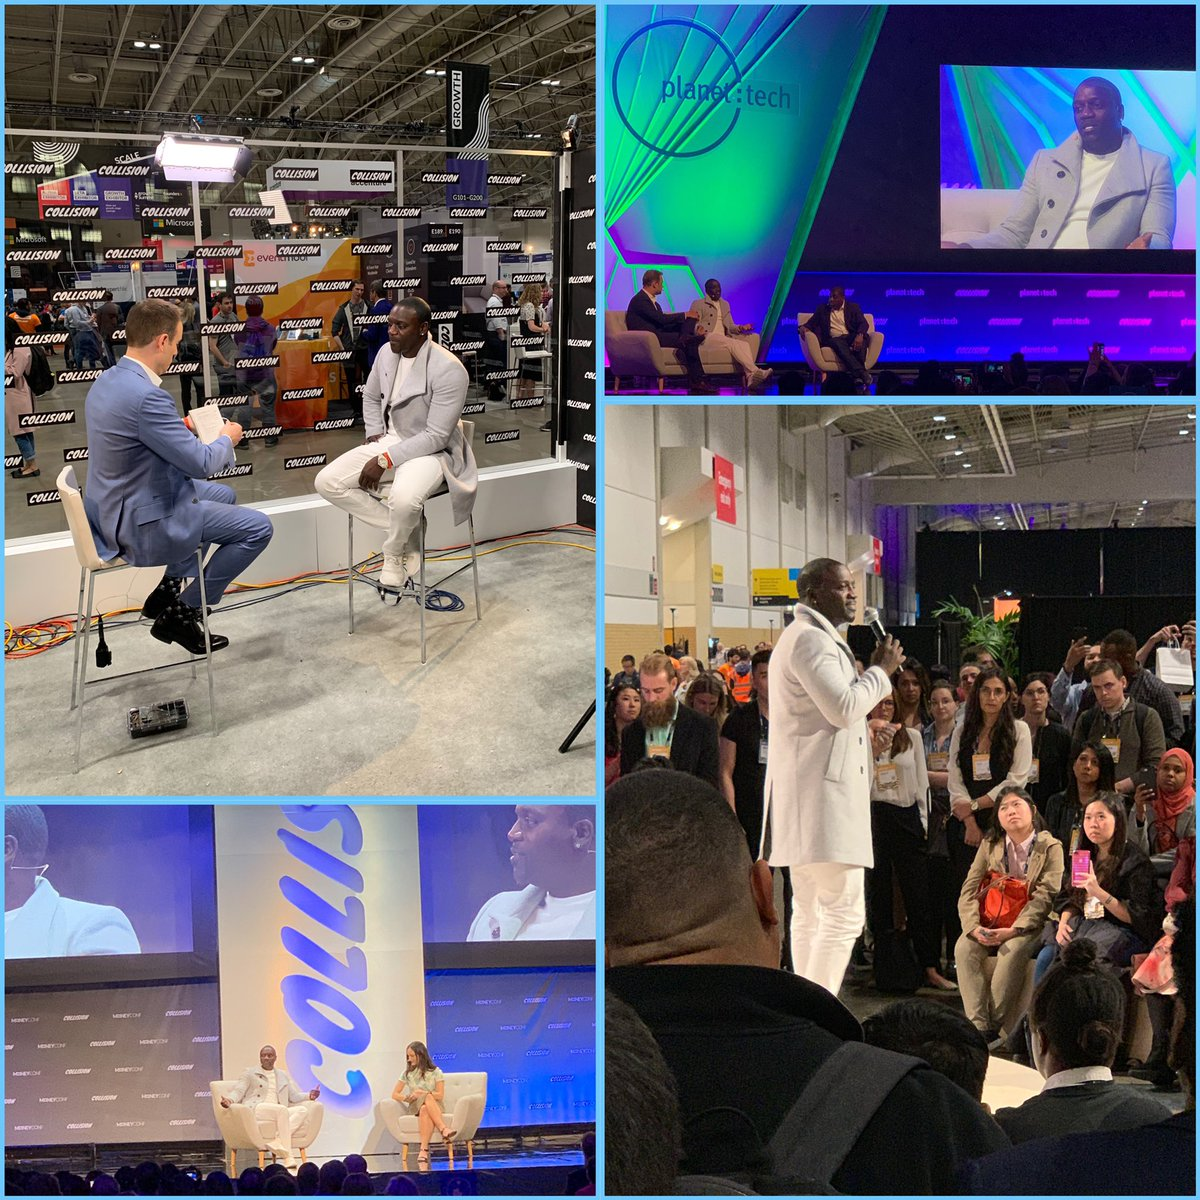 Getting ready for another amazing day at @CollisionHQ in Toronto #Akoin #technology #Africa https://t.co/kLP5tb8ysk